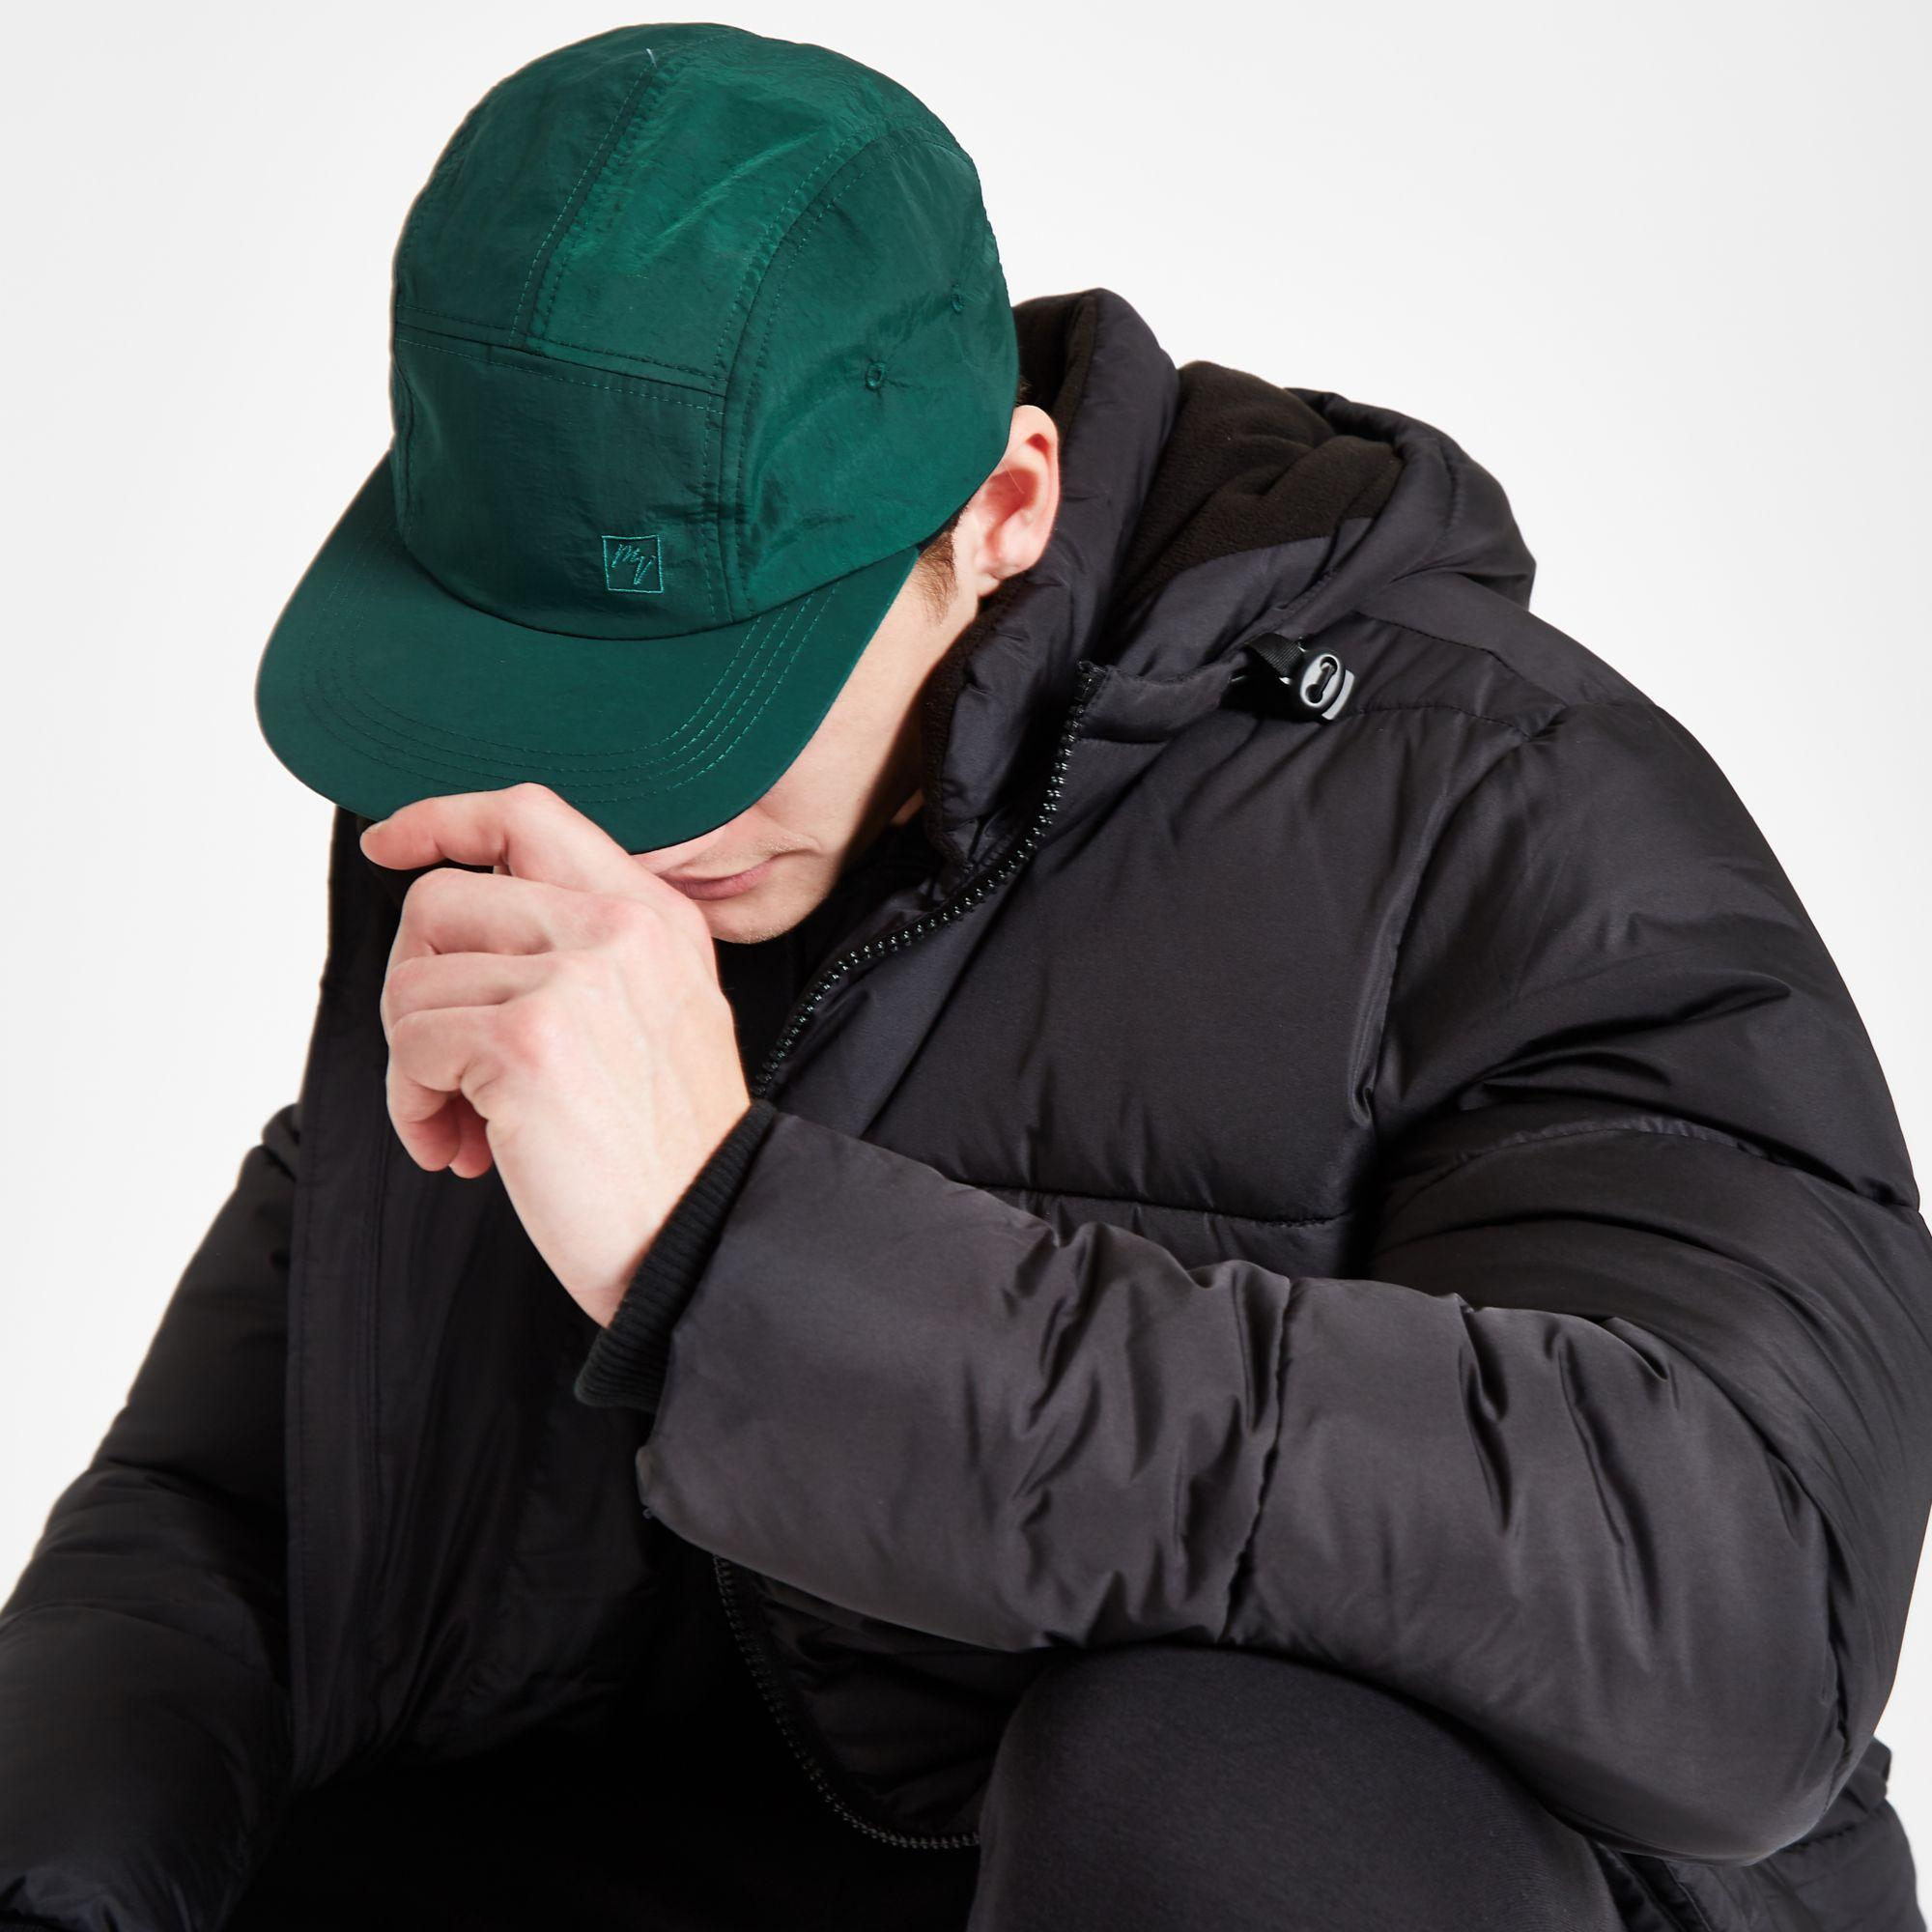 981fbac090dbc River Island  maison Riviera  Five Panel Cap in Green for Men - Lyst